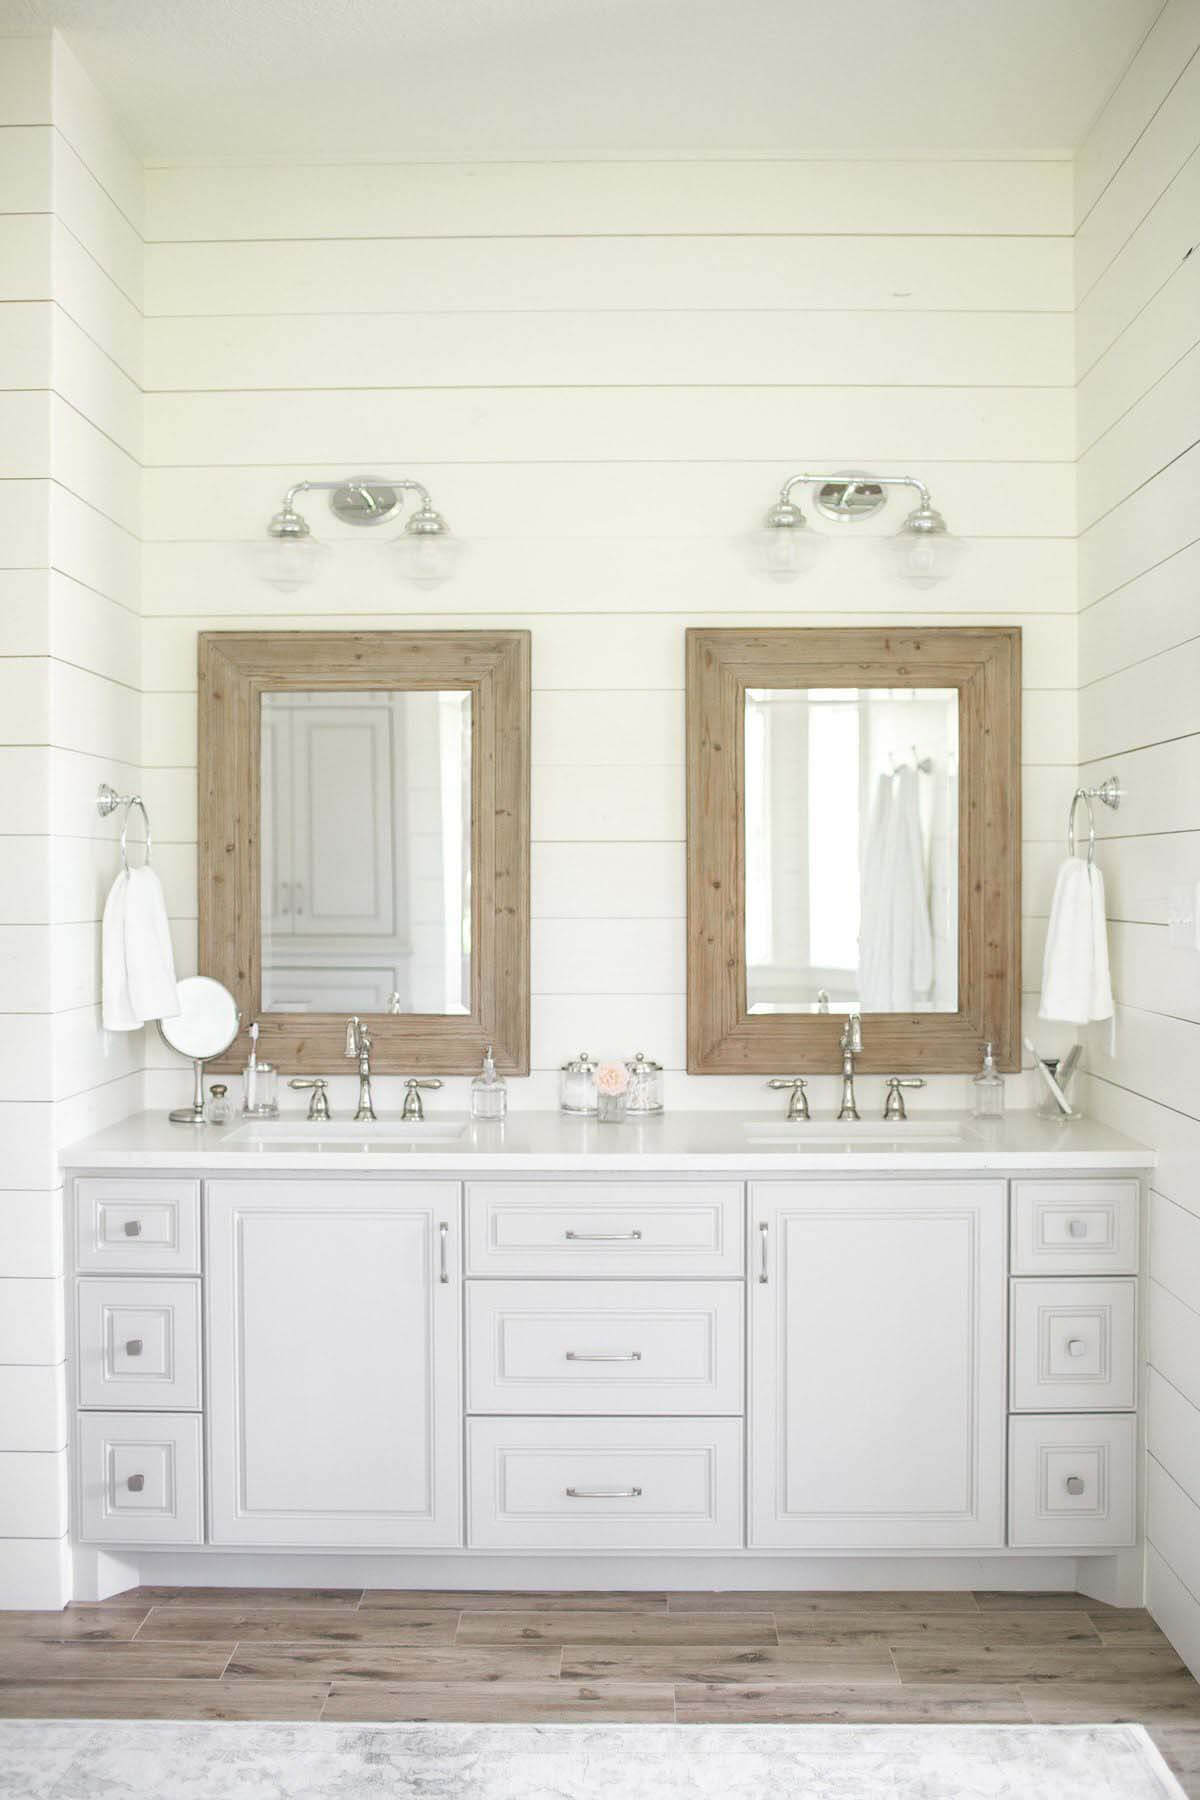 Bathroom vanity with mirrors and gray cabinetry